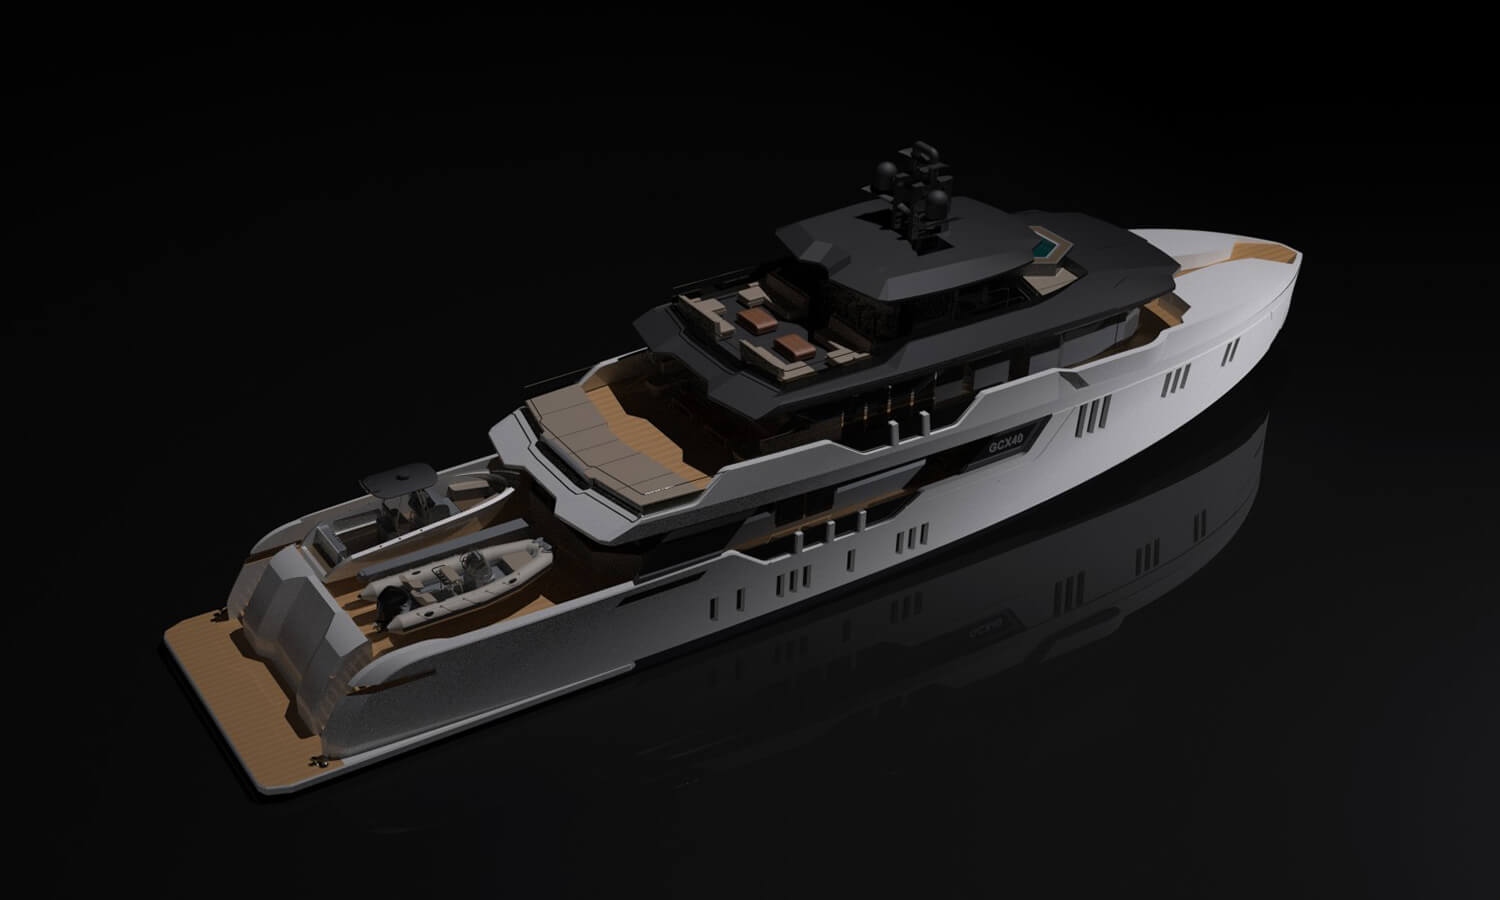 Evolution Yachts GCX40 42m Explorer Superyacht